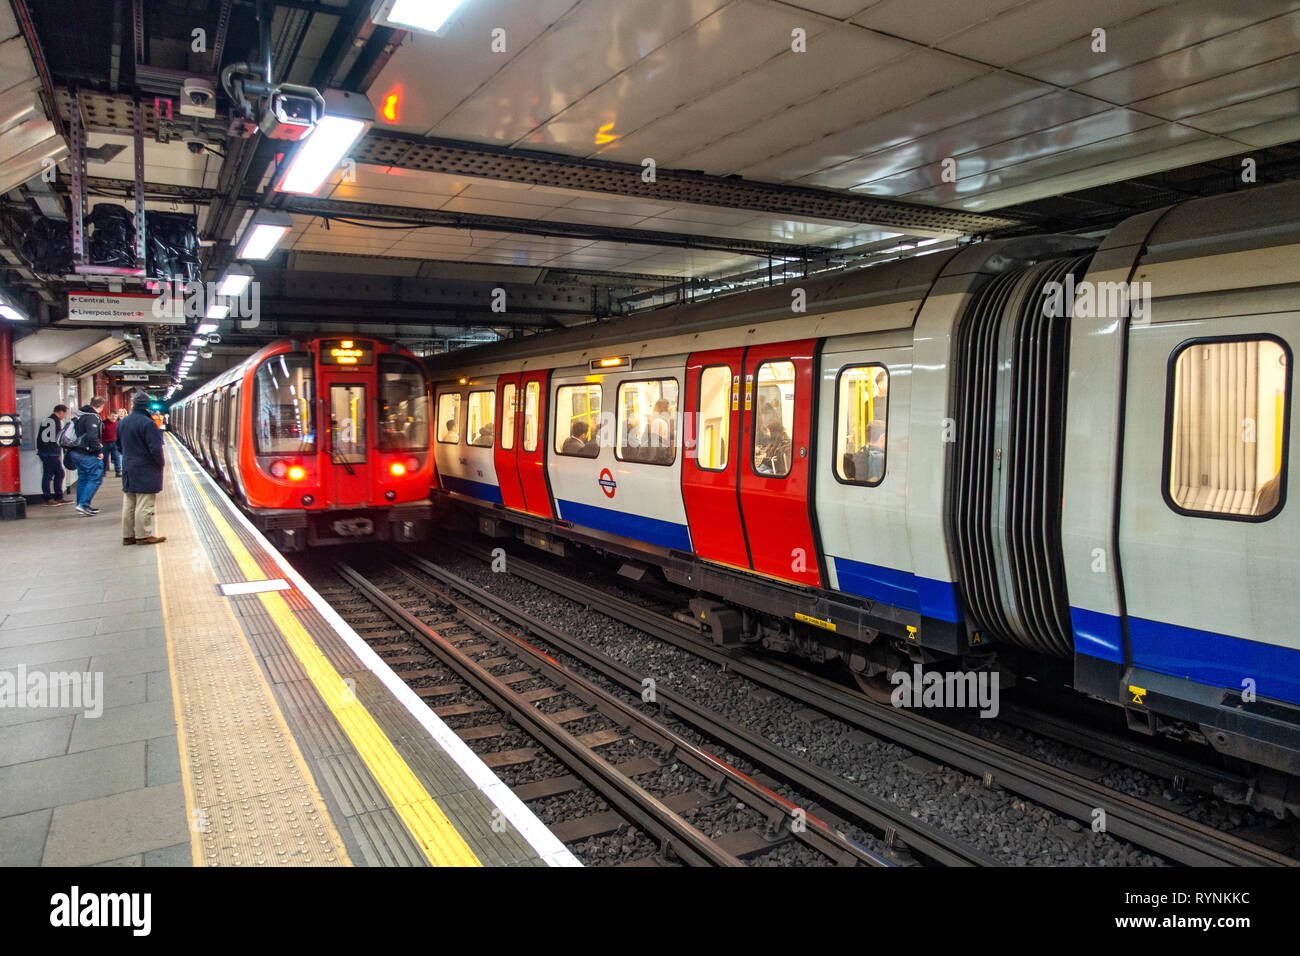 Two London Underground Tube Trains side by side at a platform london underground platform - Stock Image